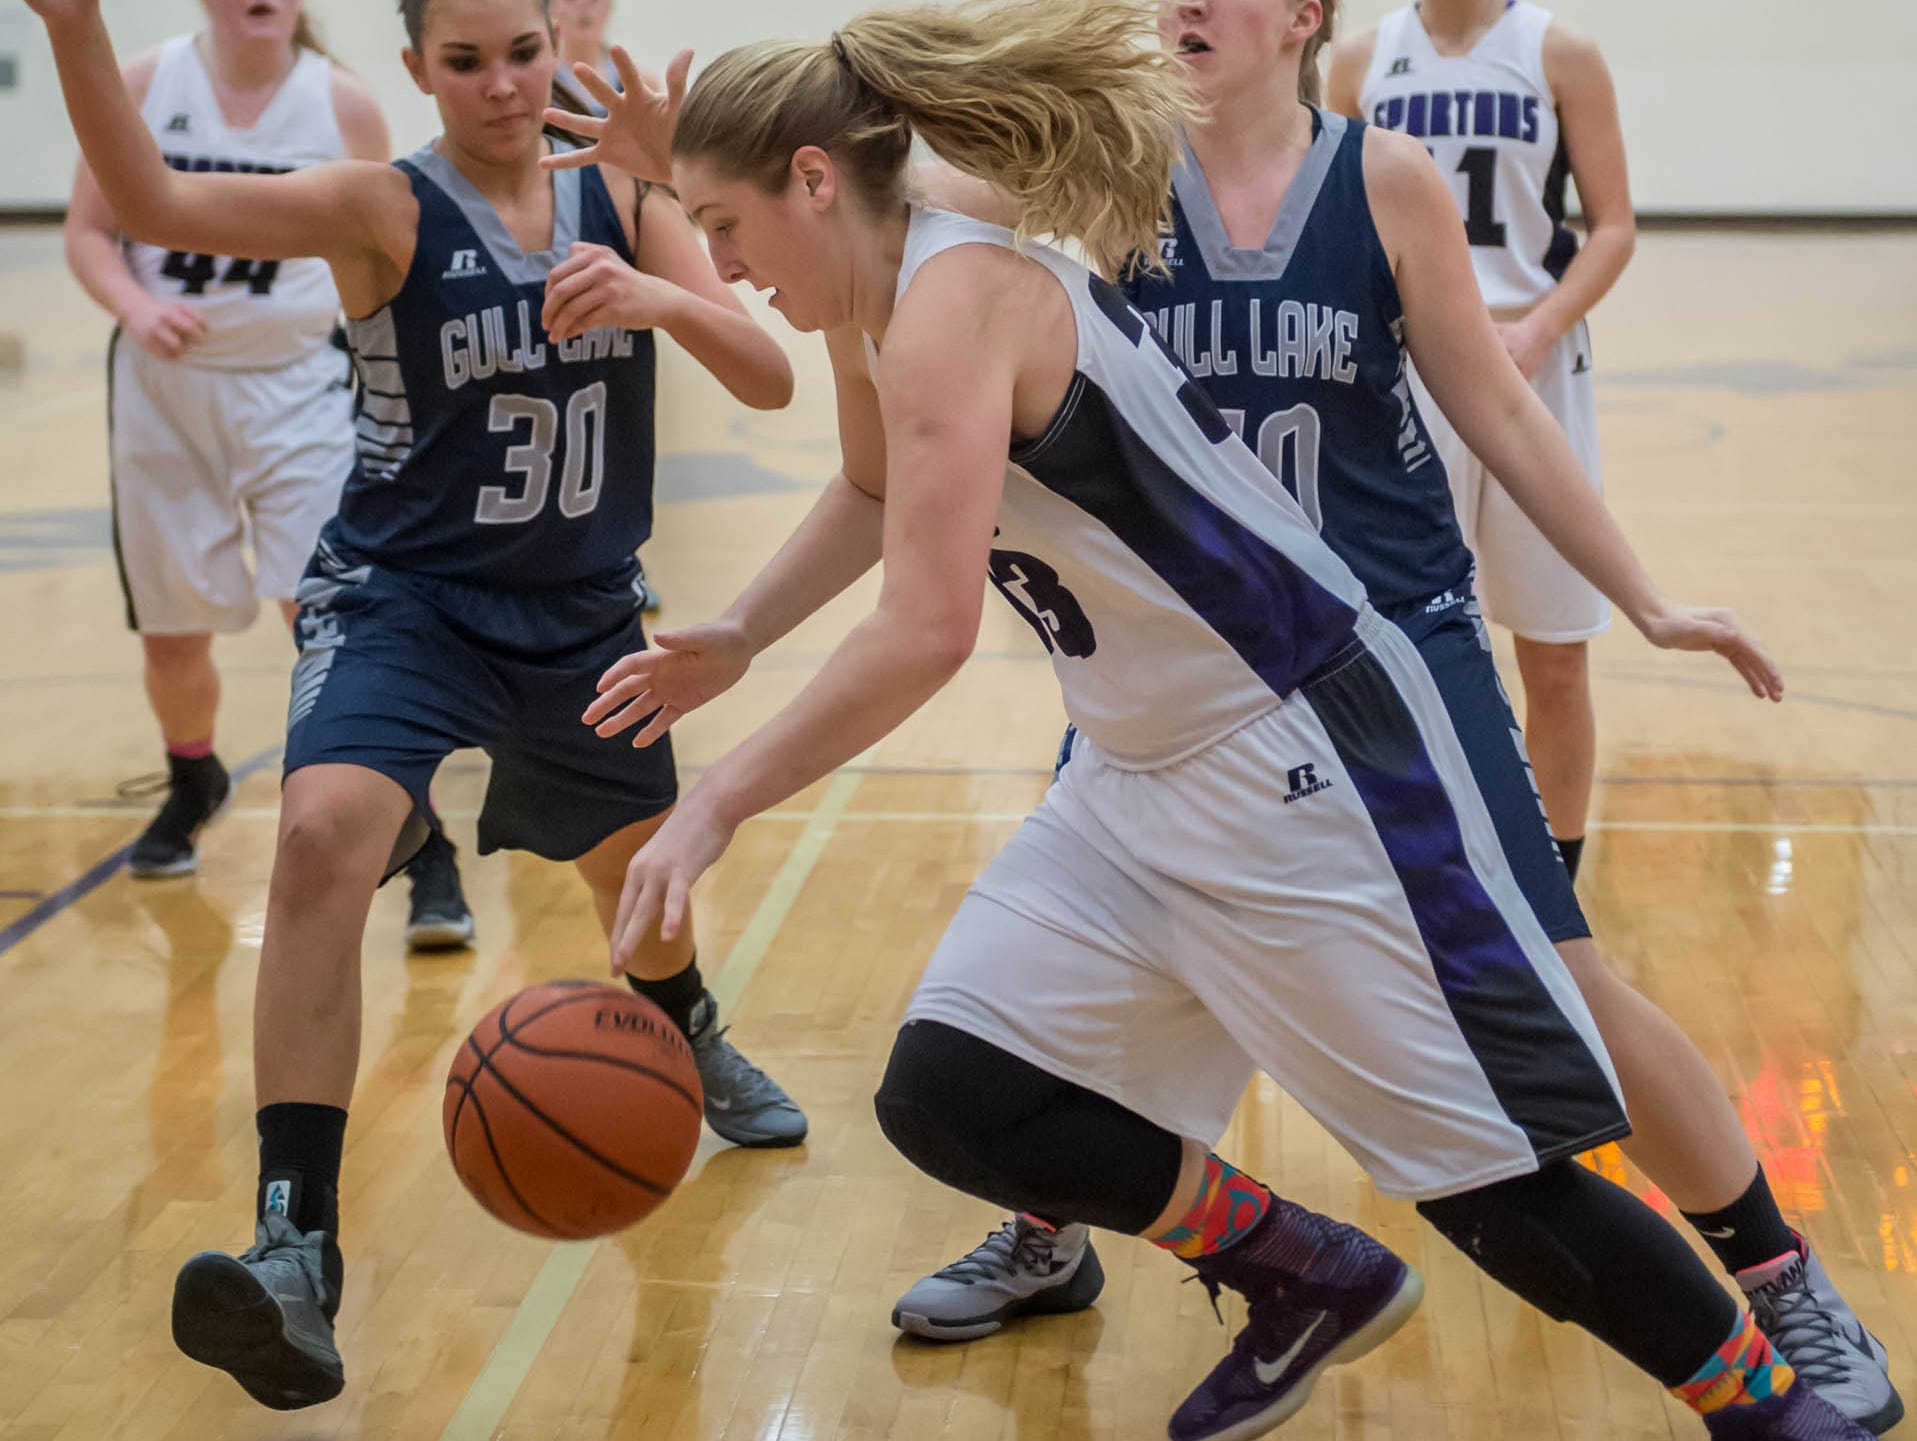 Lakeview's Jessalynn Genier goes for the ball against Gull Lake in Friday evening's game.